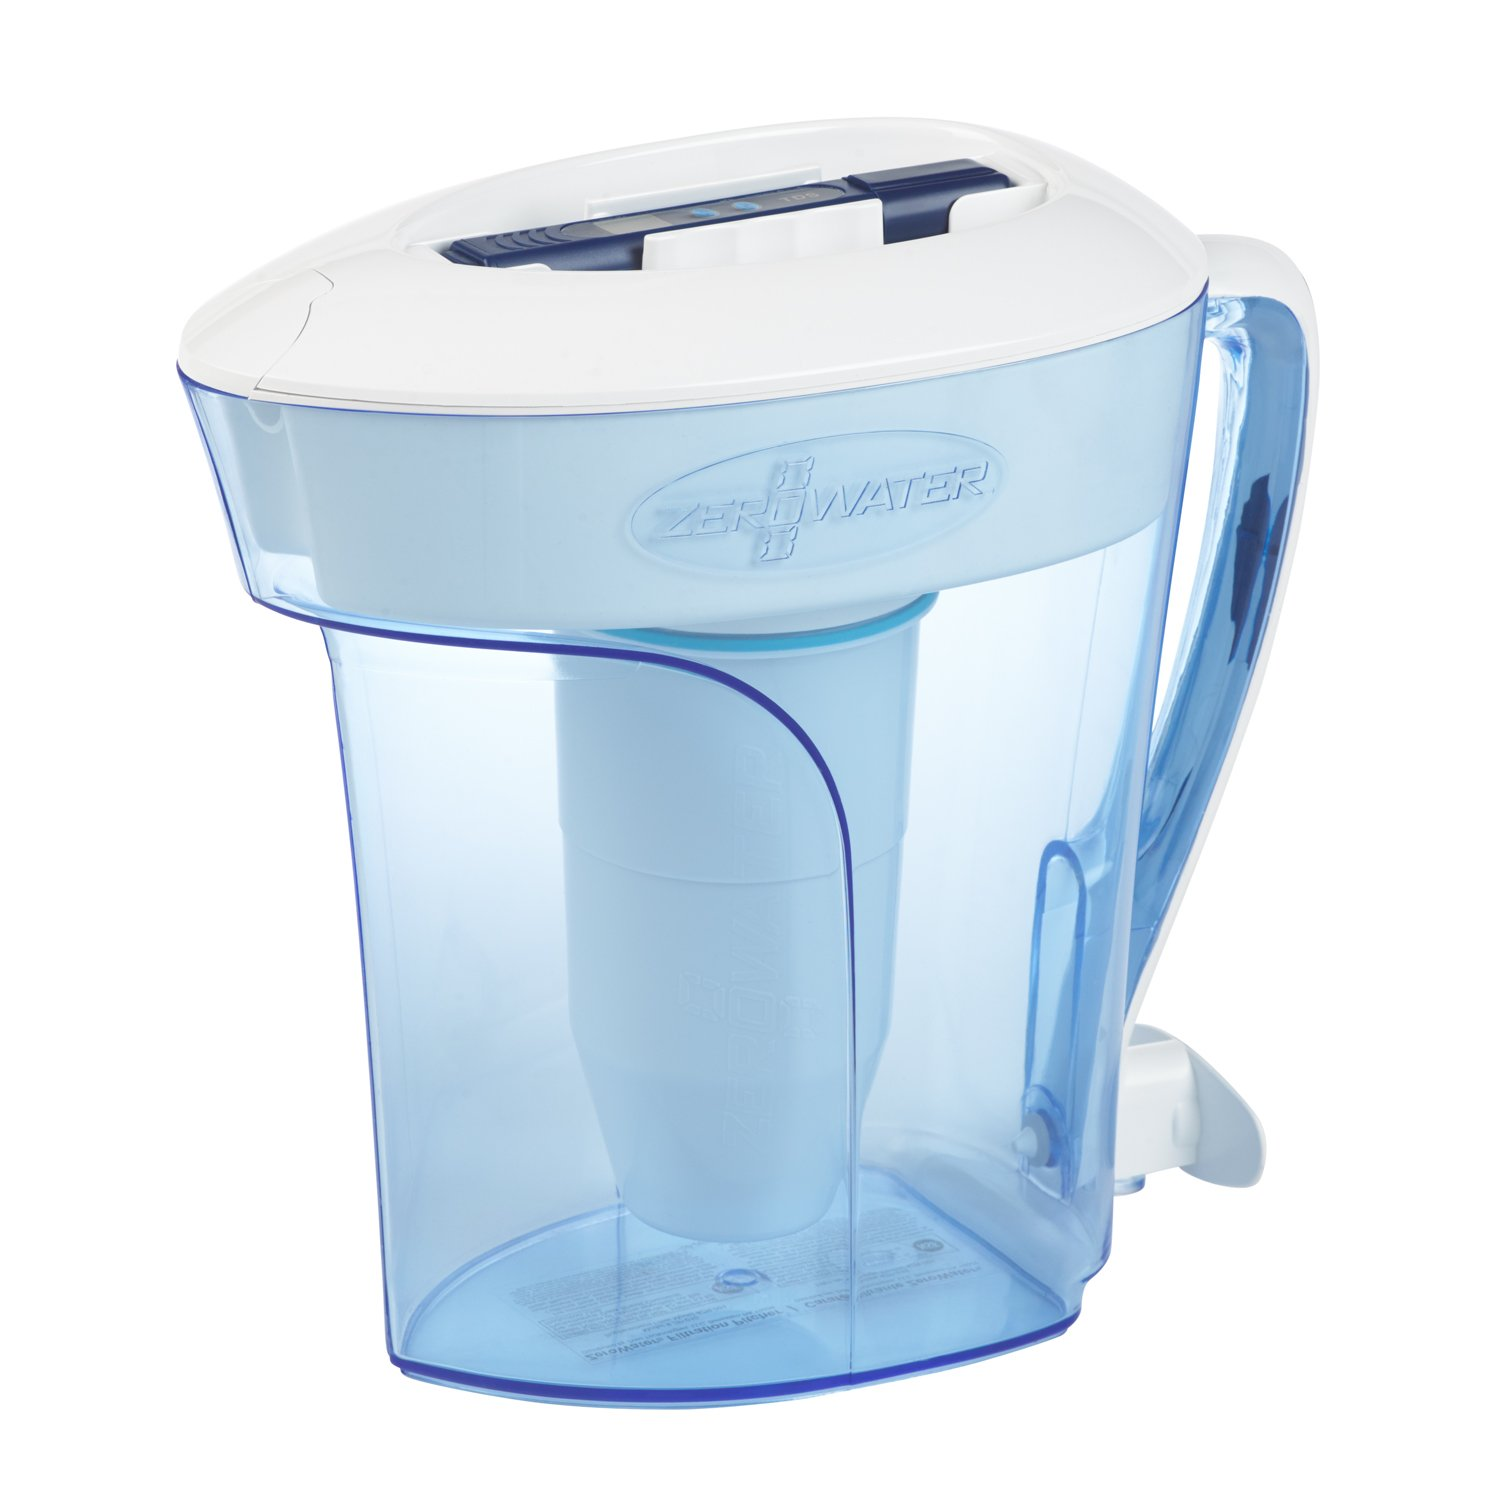 Amazon.com: ZeroWater, 10 Cup Pitcher with Free Water Quality Meter ...